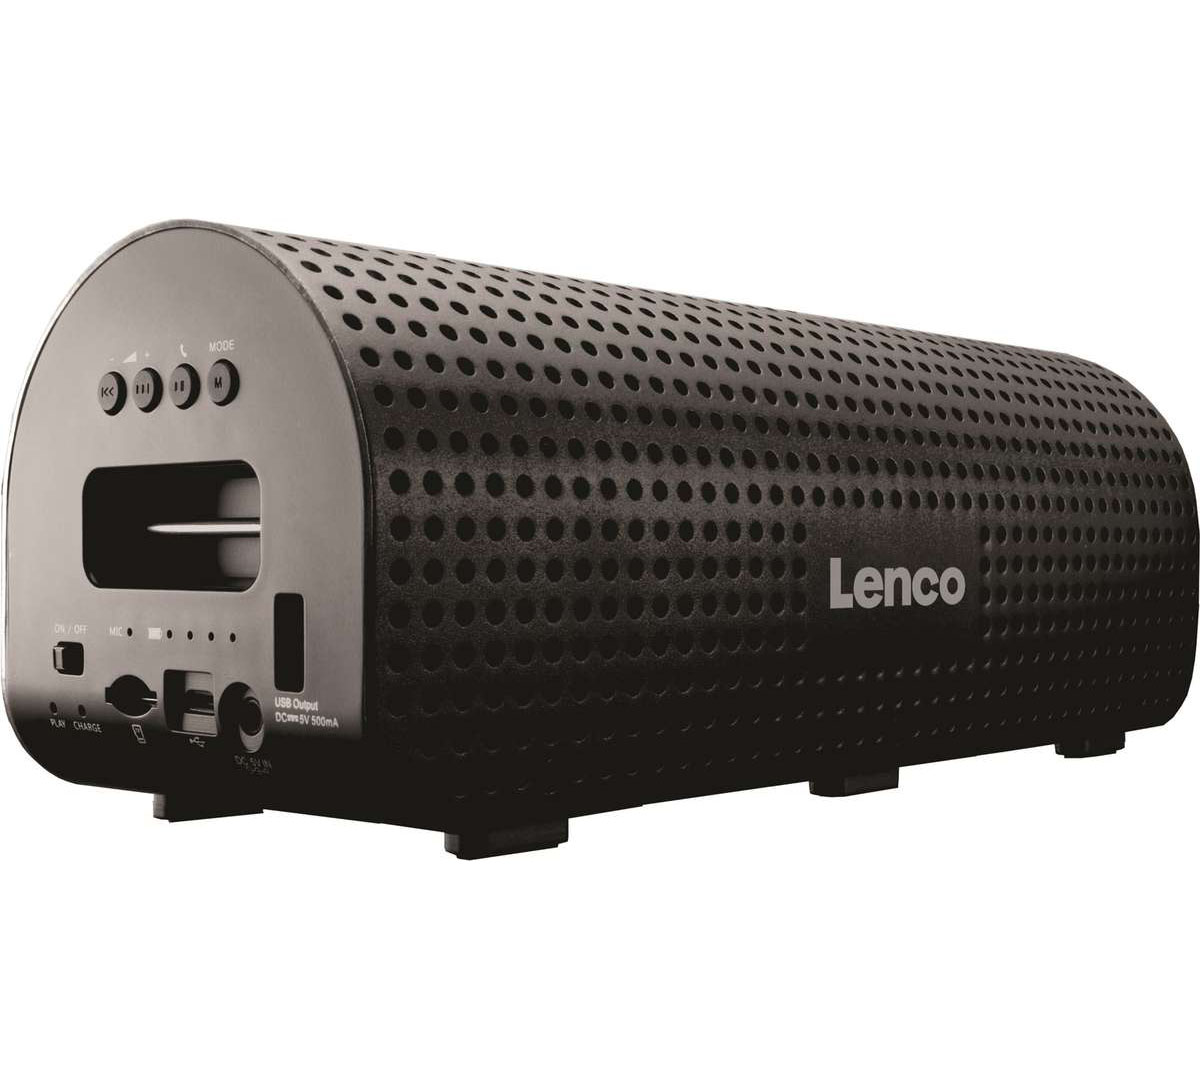 Lenco Grid-7 Black Bluetooth 2.1 Speaker with Powerbank: Ασύρματο Ηχείο & Φορητή Μπαταρία + Line-in + microSD + Speakerphone